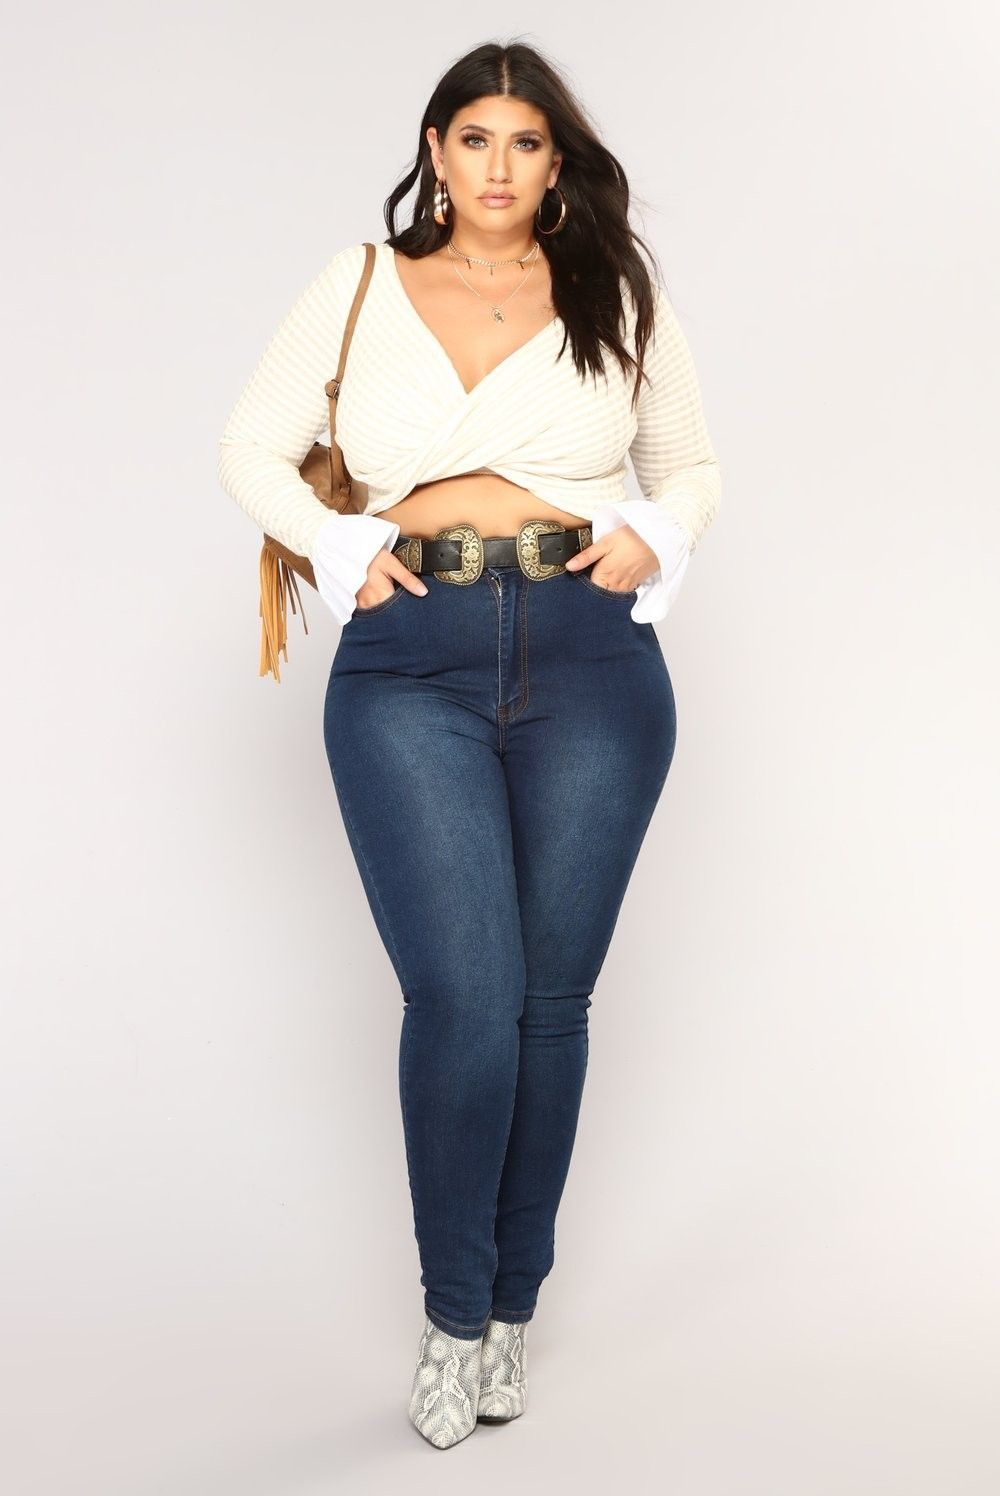 Outfits inspired by Chiquis Rivera to show off those curves with high jeans